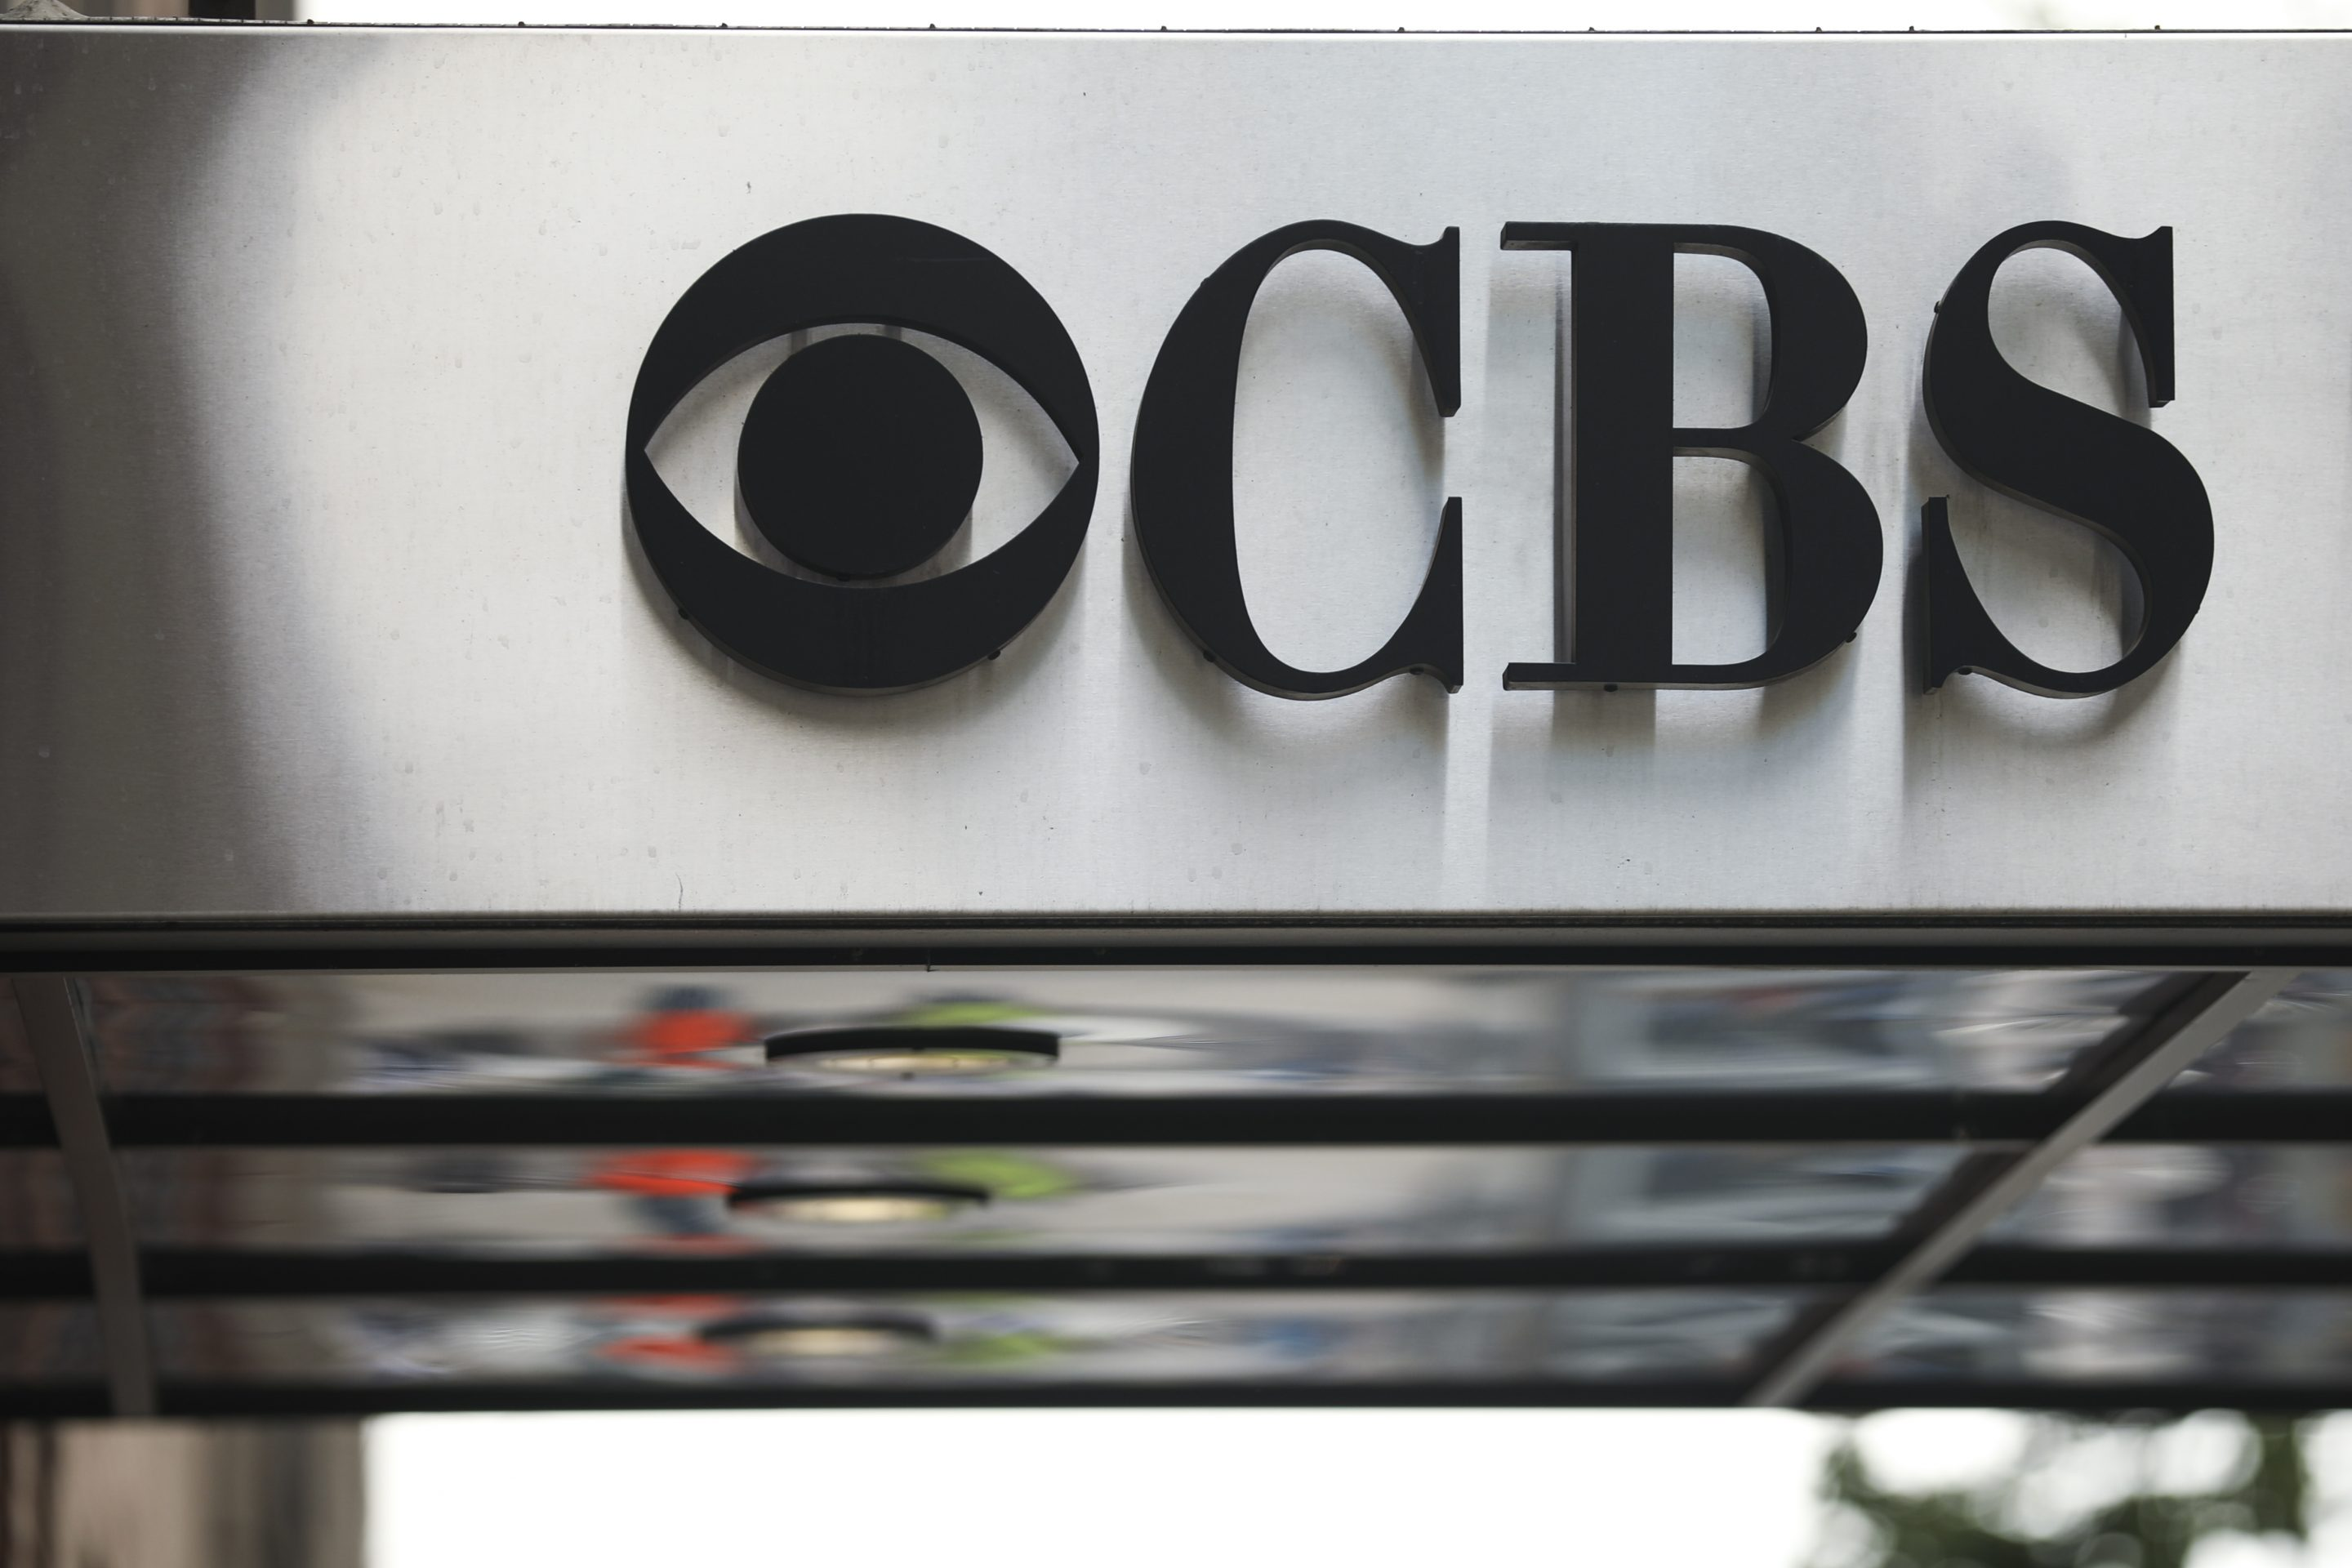 CBS And Viacom Reach Deal for 12 Billion Dollar Merger